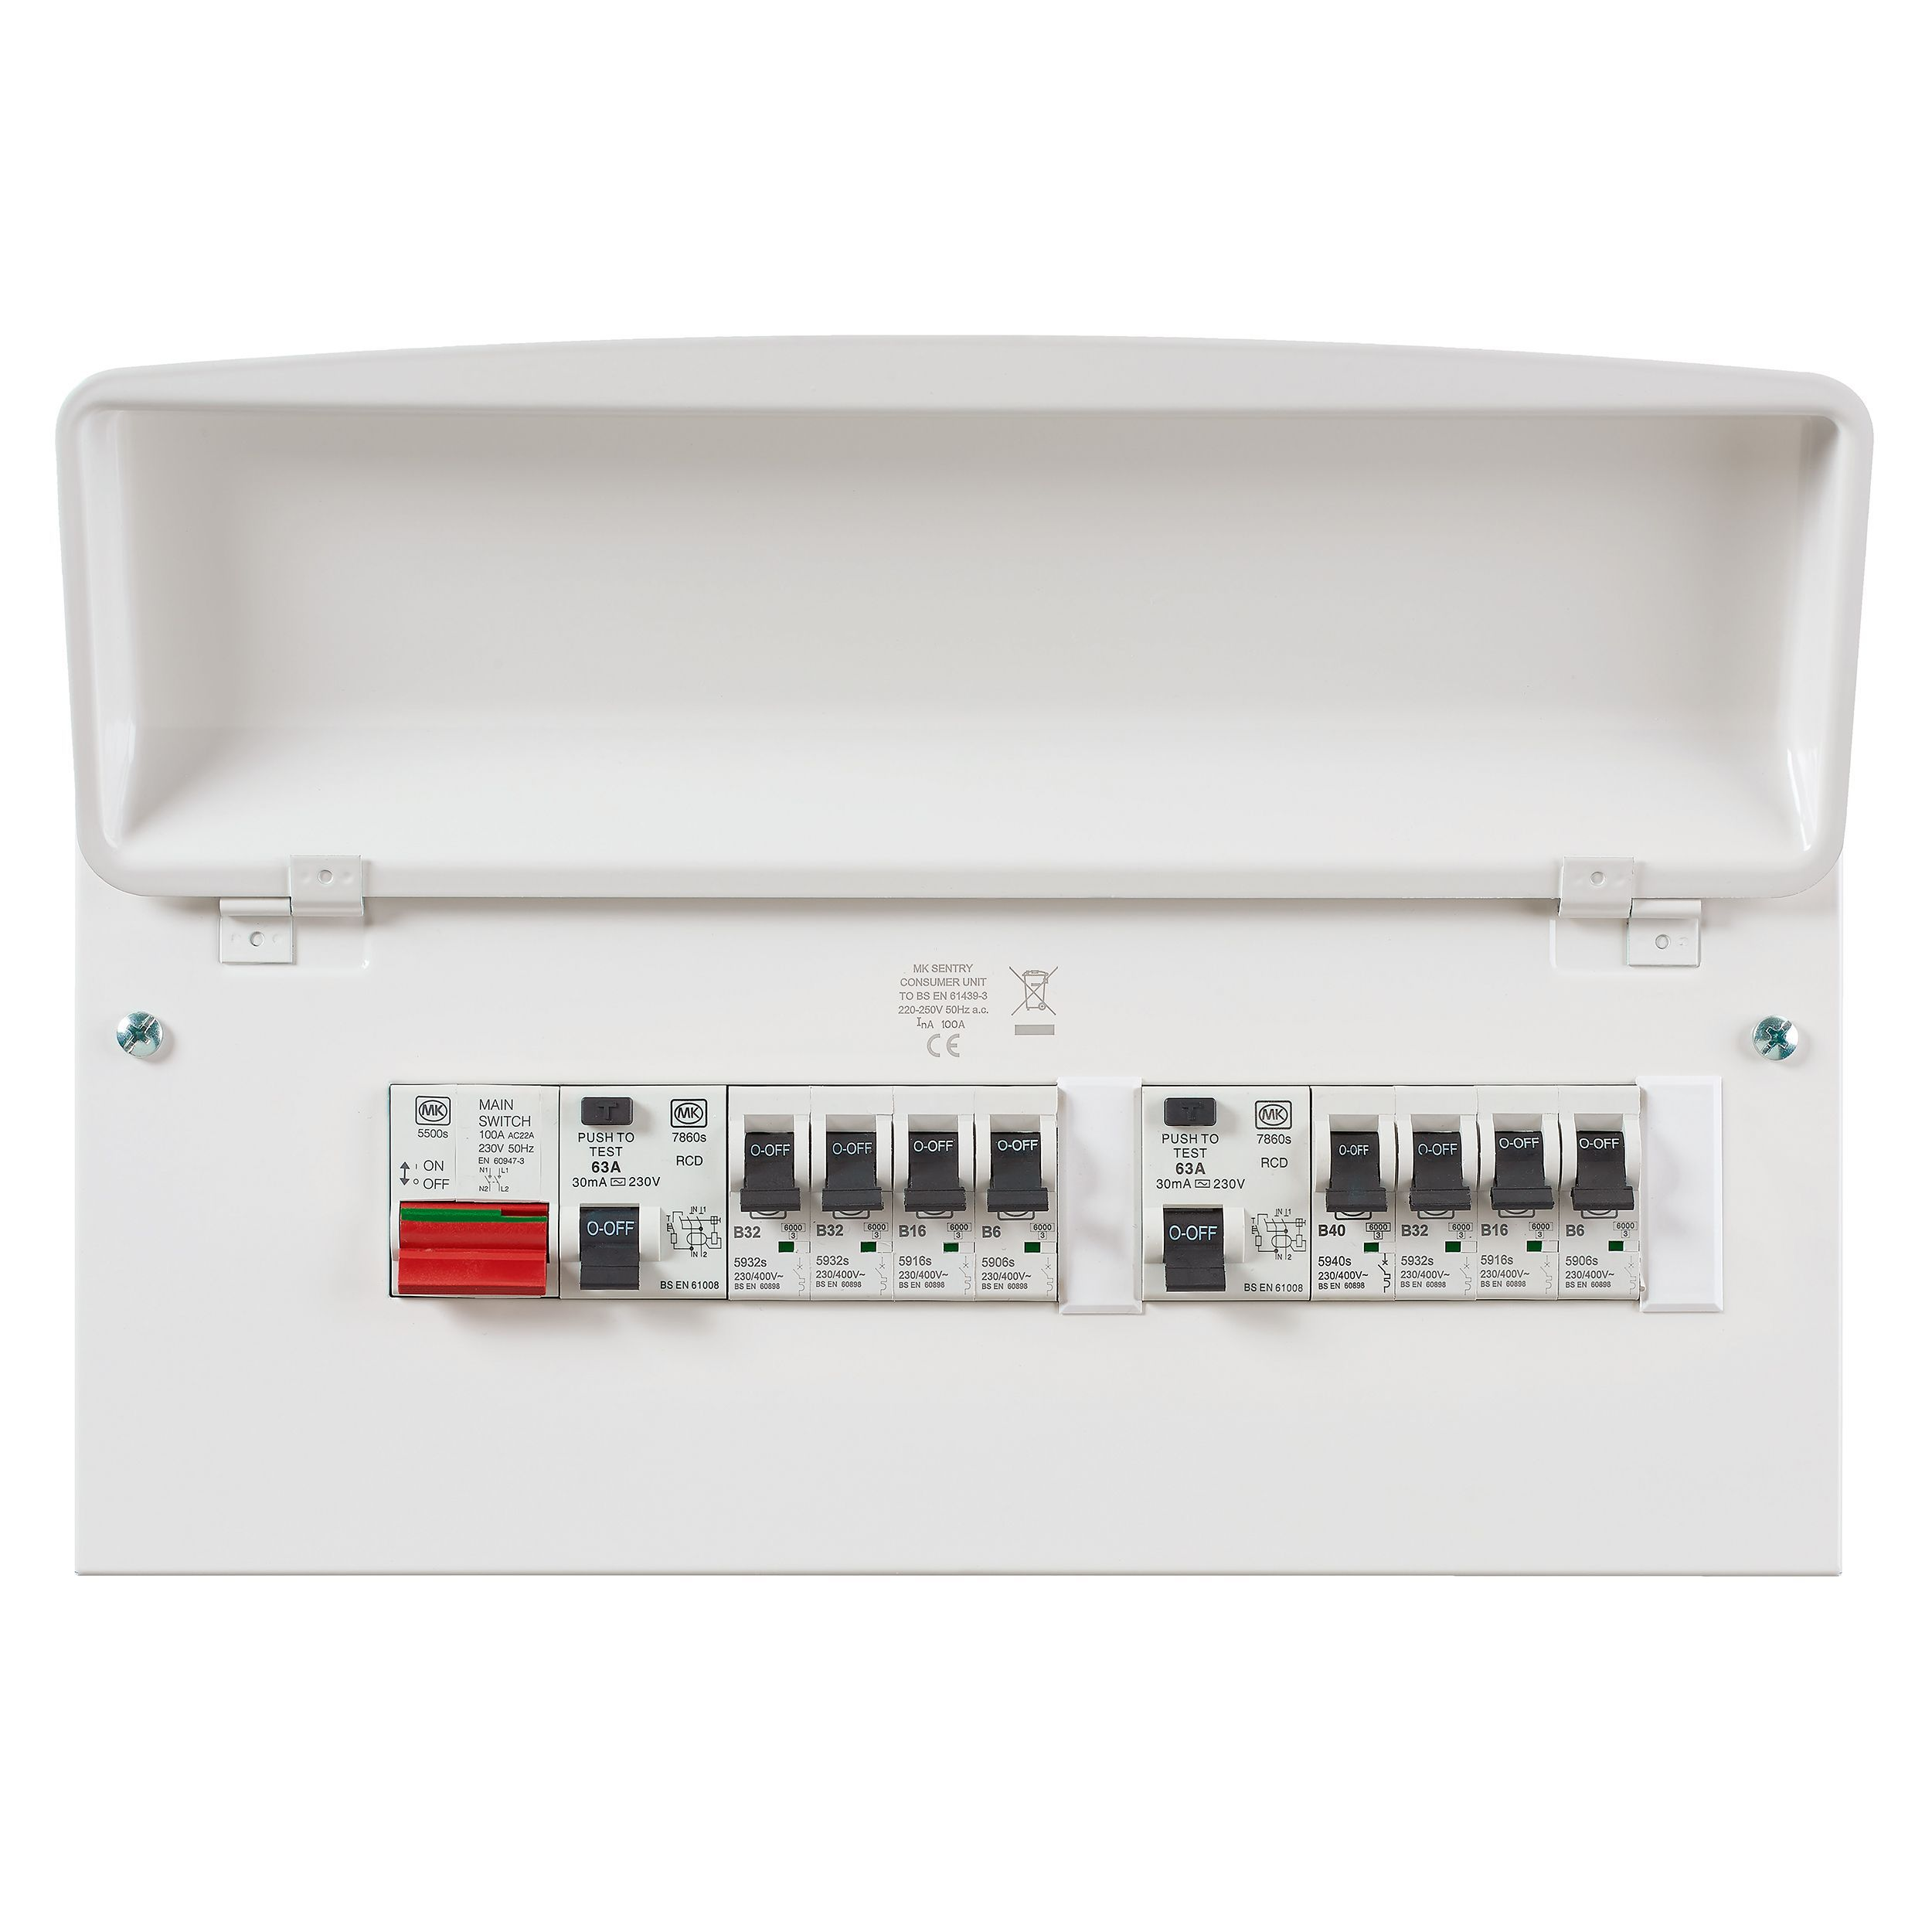 Fuse Box Rcd Switch : Mk a way safety switch metal enclosure consumer unit